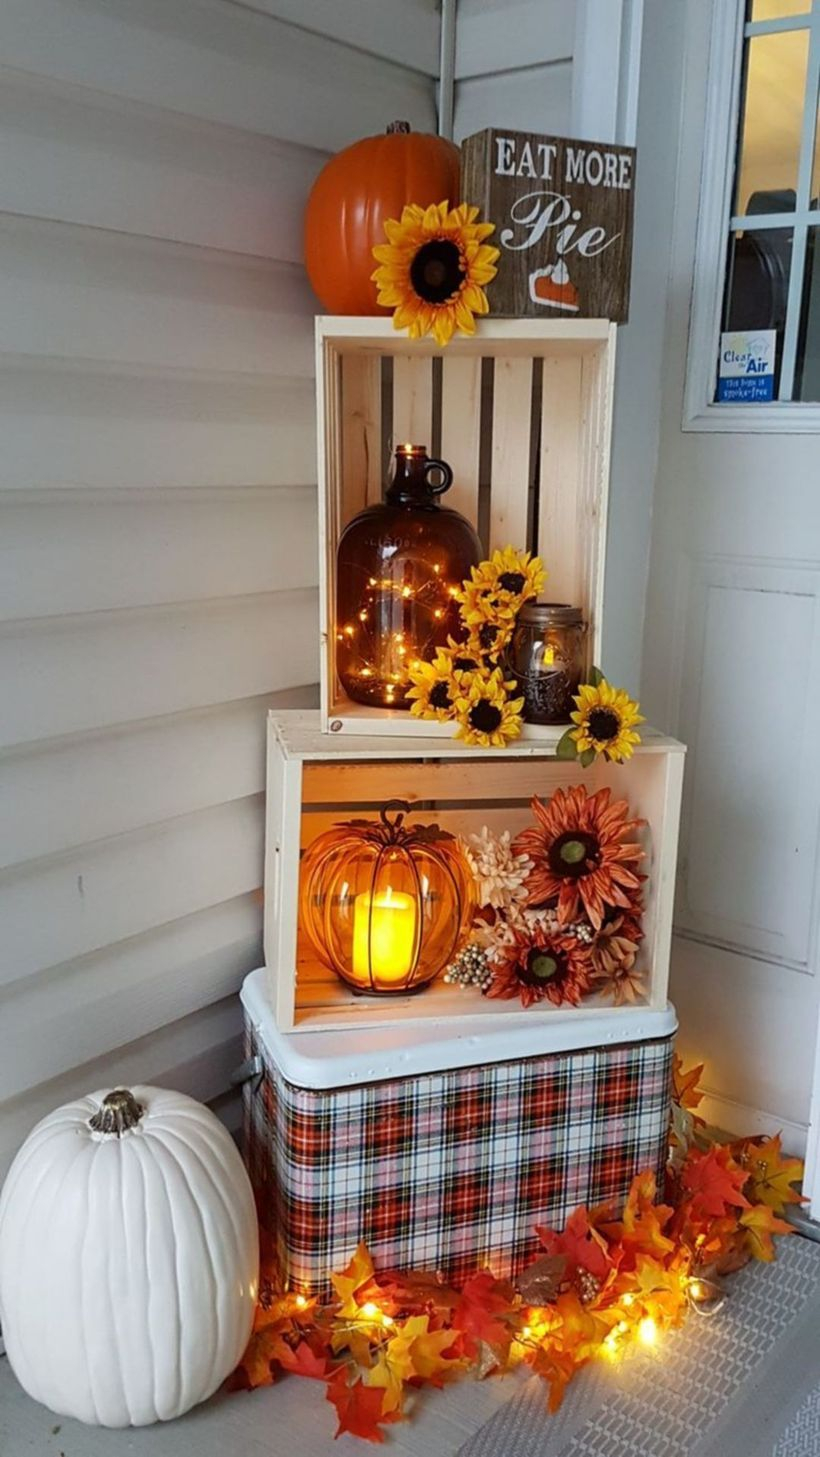 Decorative lighting with pumpkin